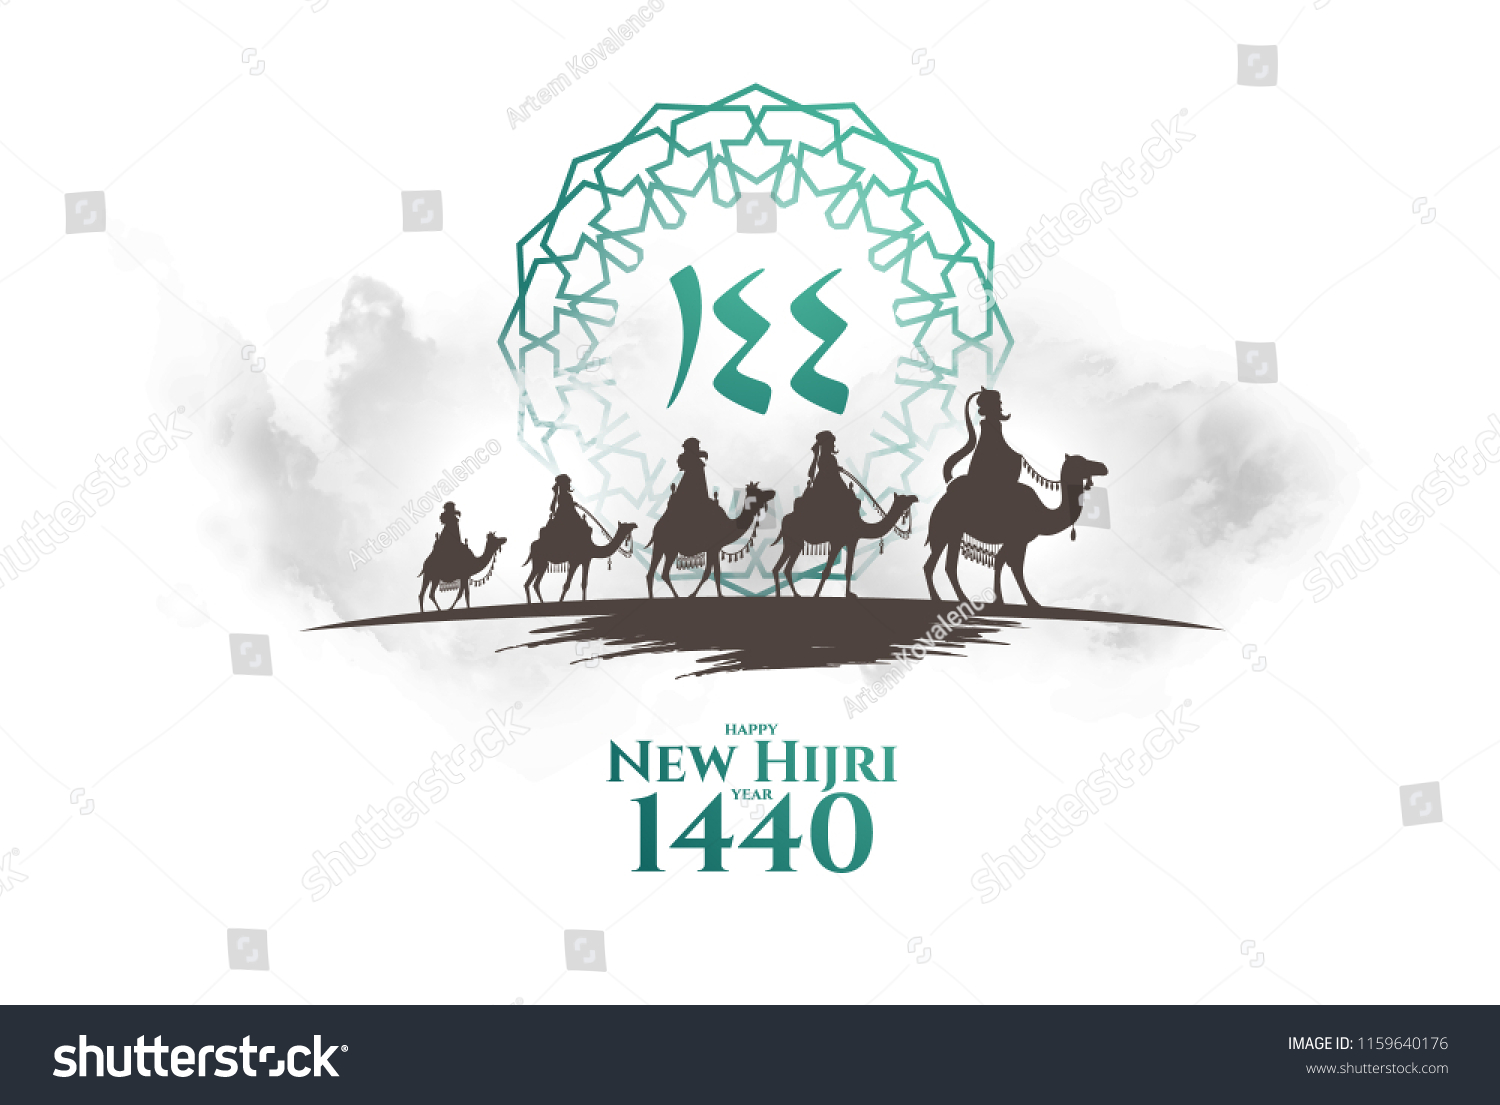 vector illustration happy new Hijri year 1440. Happy Islamic New Year. Graphic design for the decoration of gift certificates, banners and flyer. Translation from Arabic : happy new Hijri year 1440 #1159640176